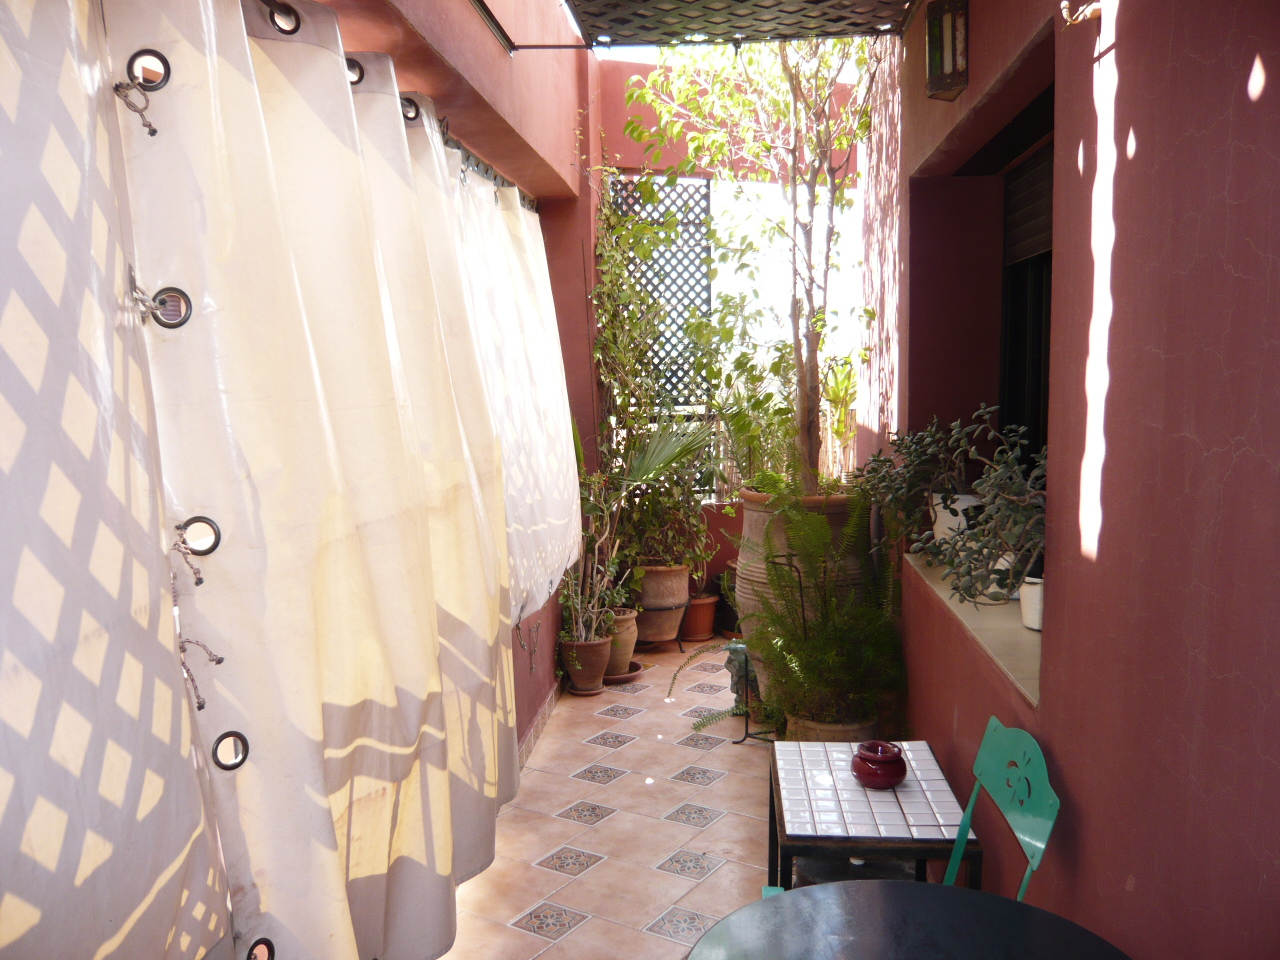 Image appartement en vente Marrakech 7